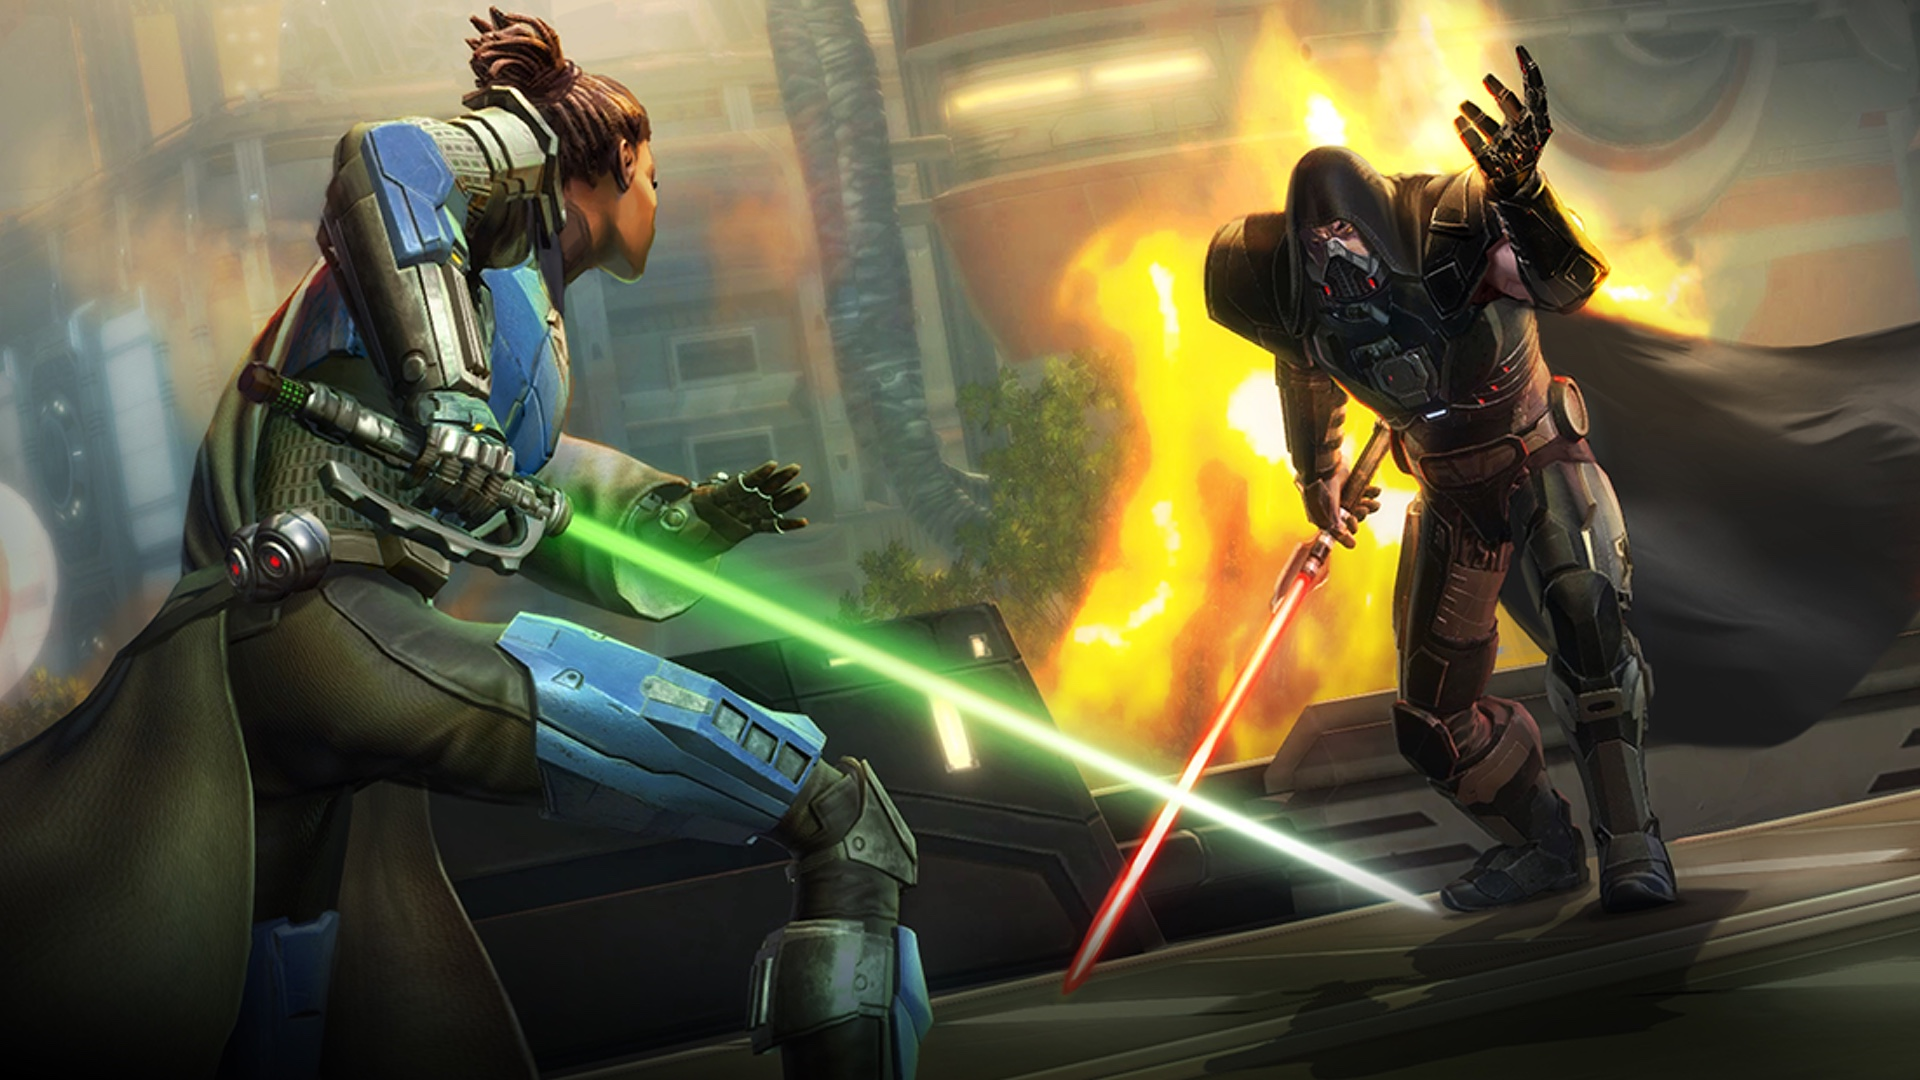 Star Wars The Old Republic Is Getting A New Expansion After 3